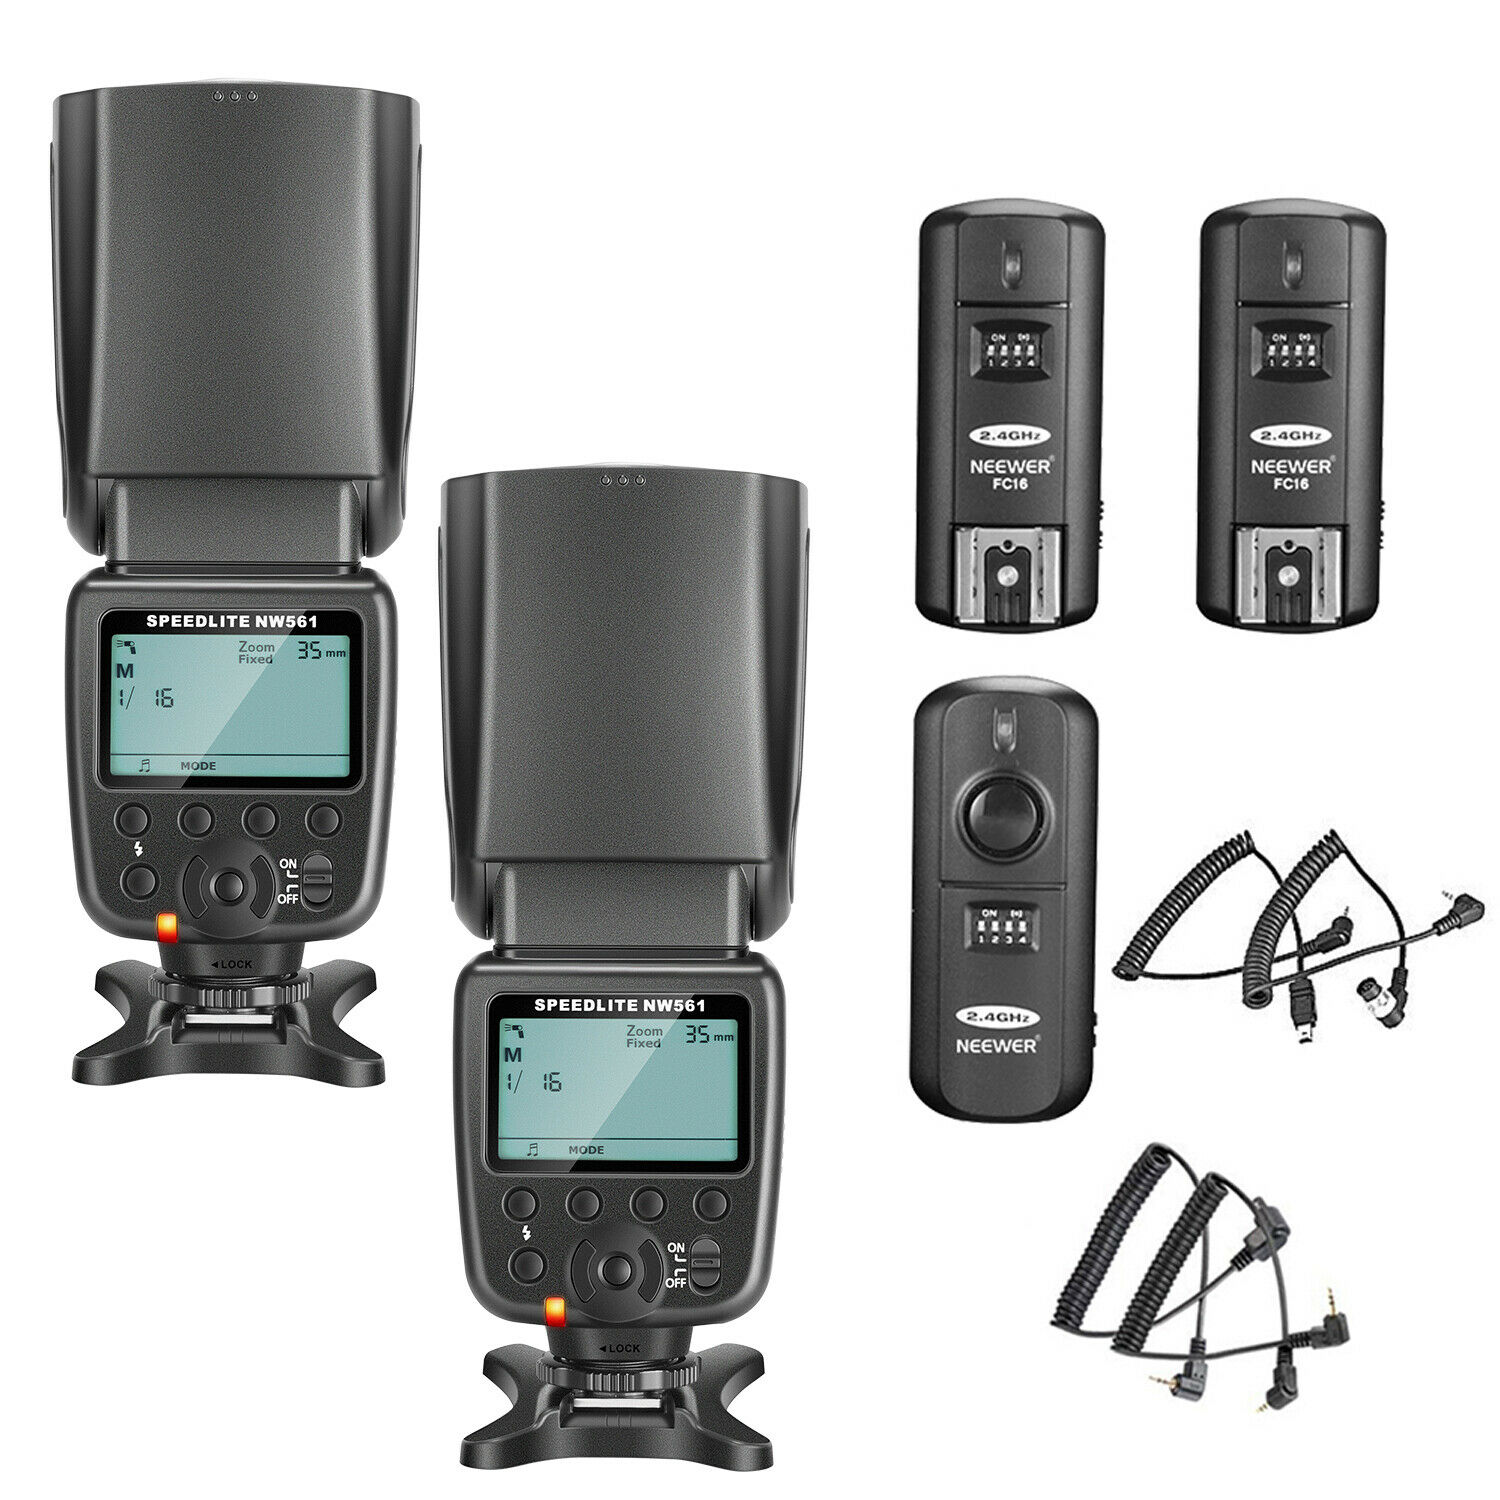 TT685C Flashpoint Zoom R2 Thinklite TTL Flash with XPROC Trigger Kit for Canon Cameras